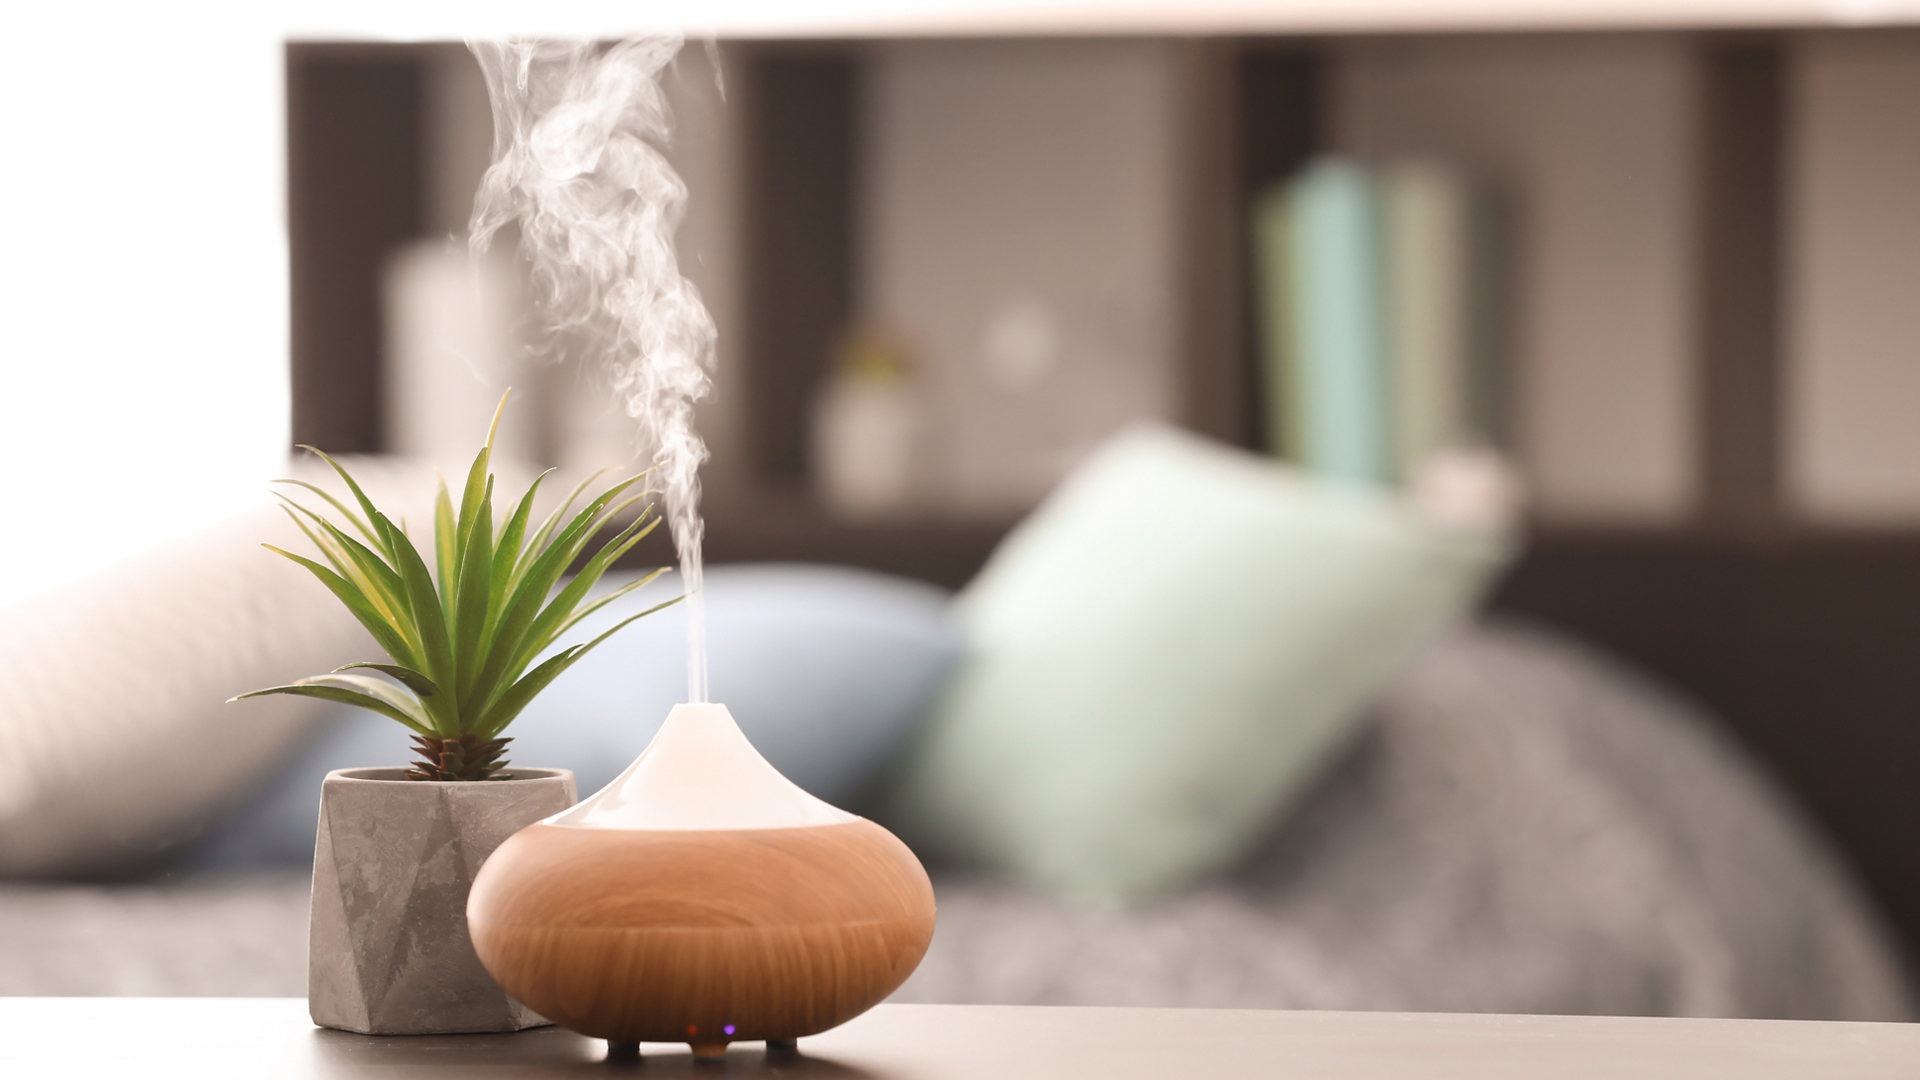 Usage Environment Things to Consider When Buying a Humidifier